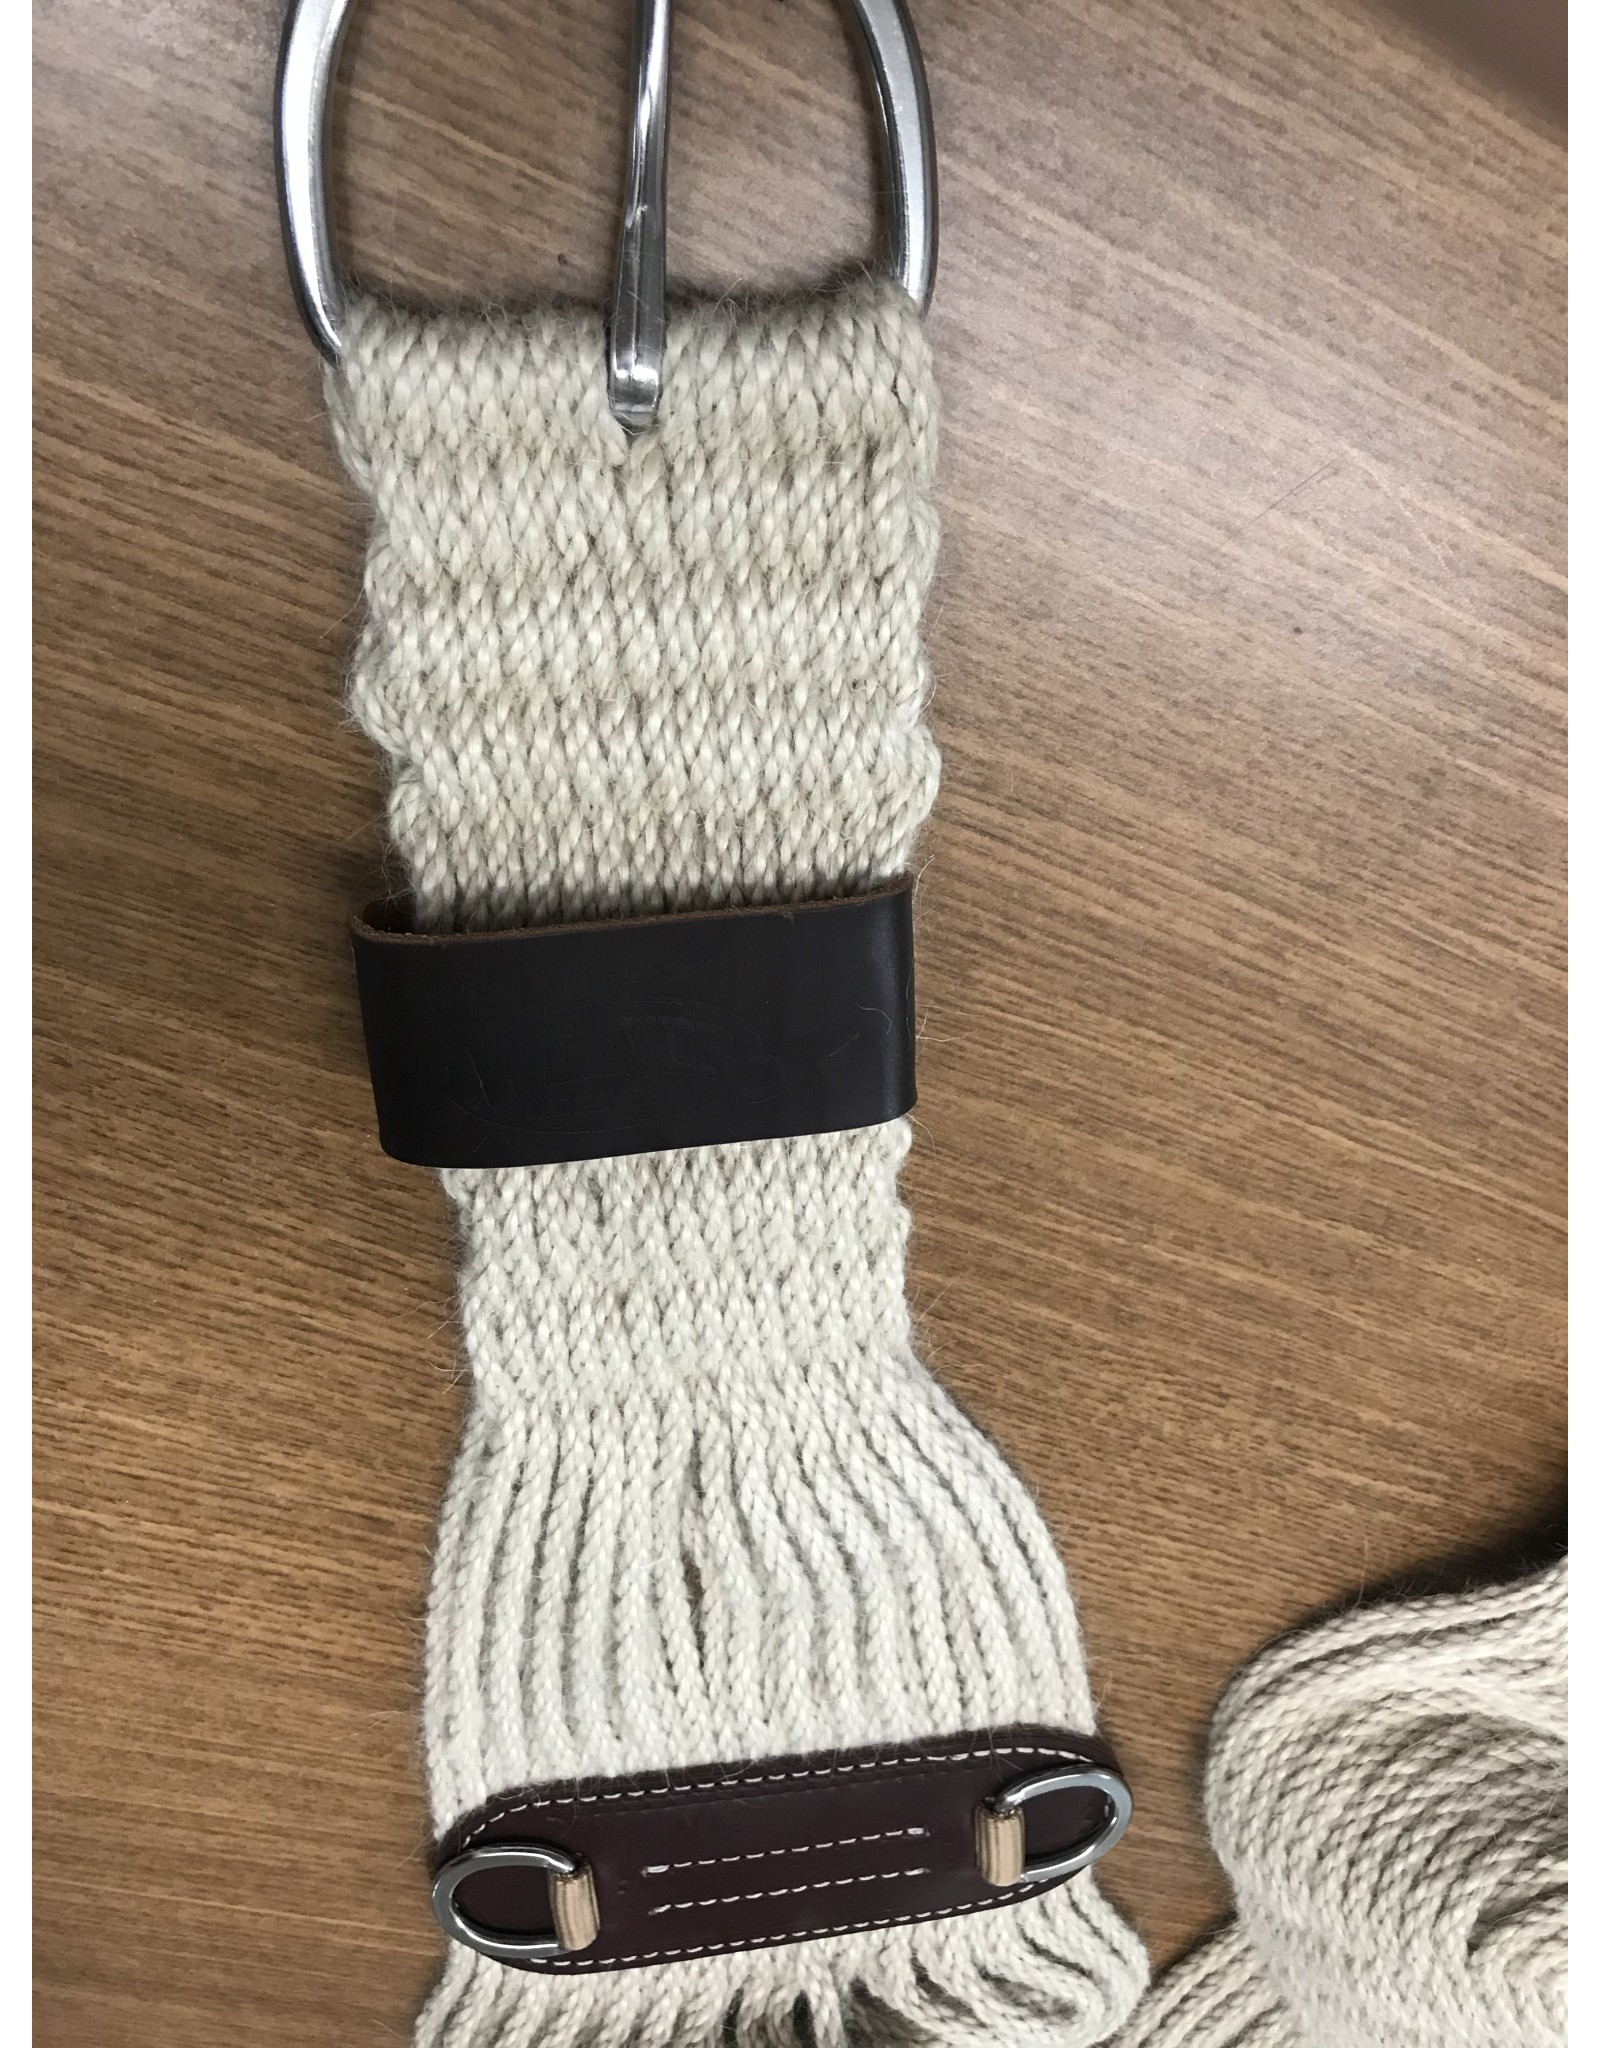 CIN* 100%  Mohair Roper Cinch - 34'' #35-2431-34 (mid cinch with leather under and one leather cinch holder basic hardware)